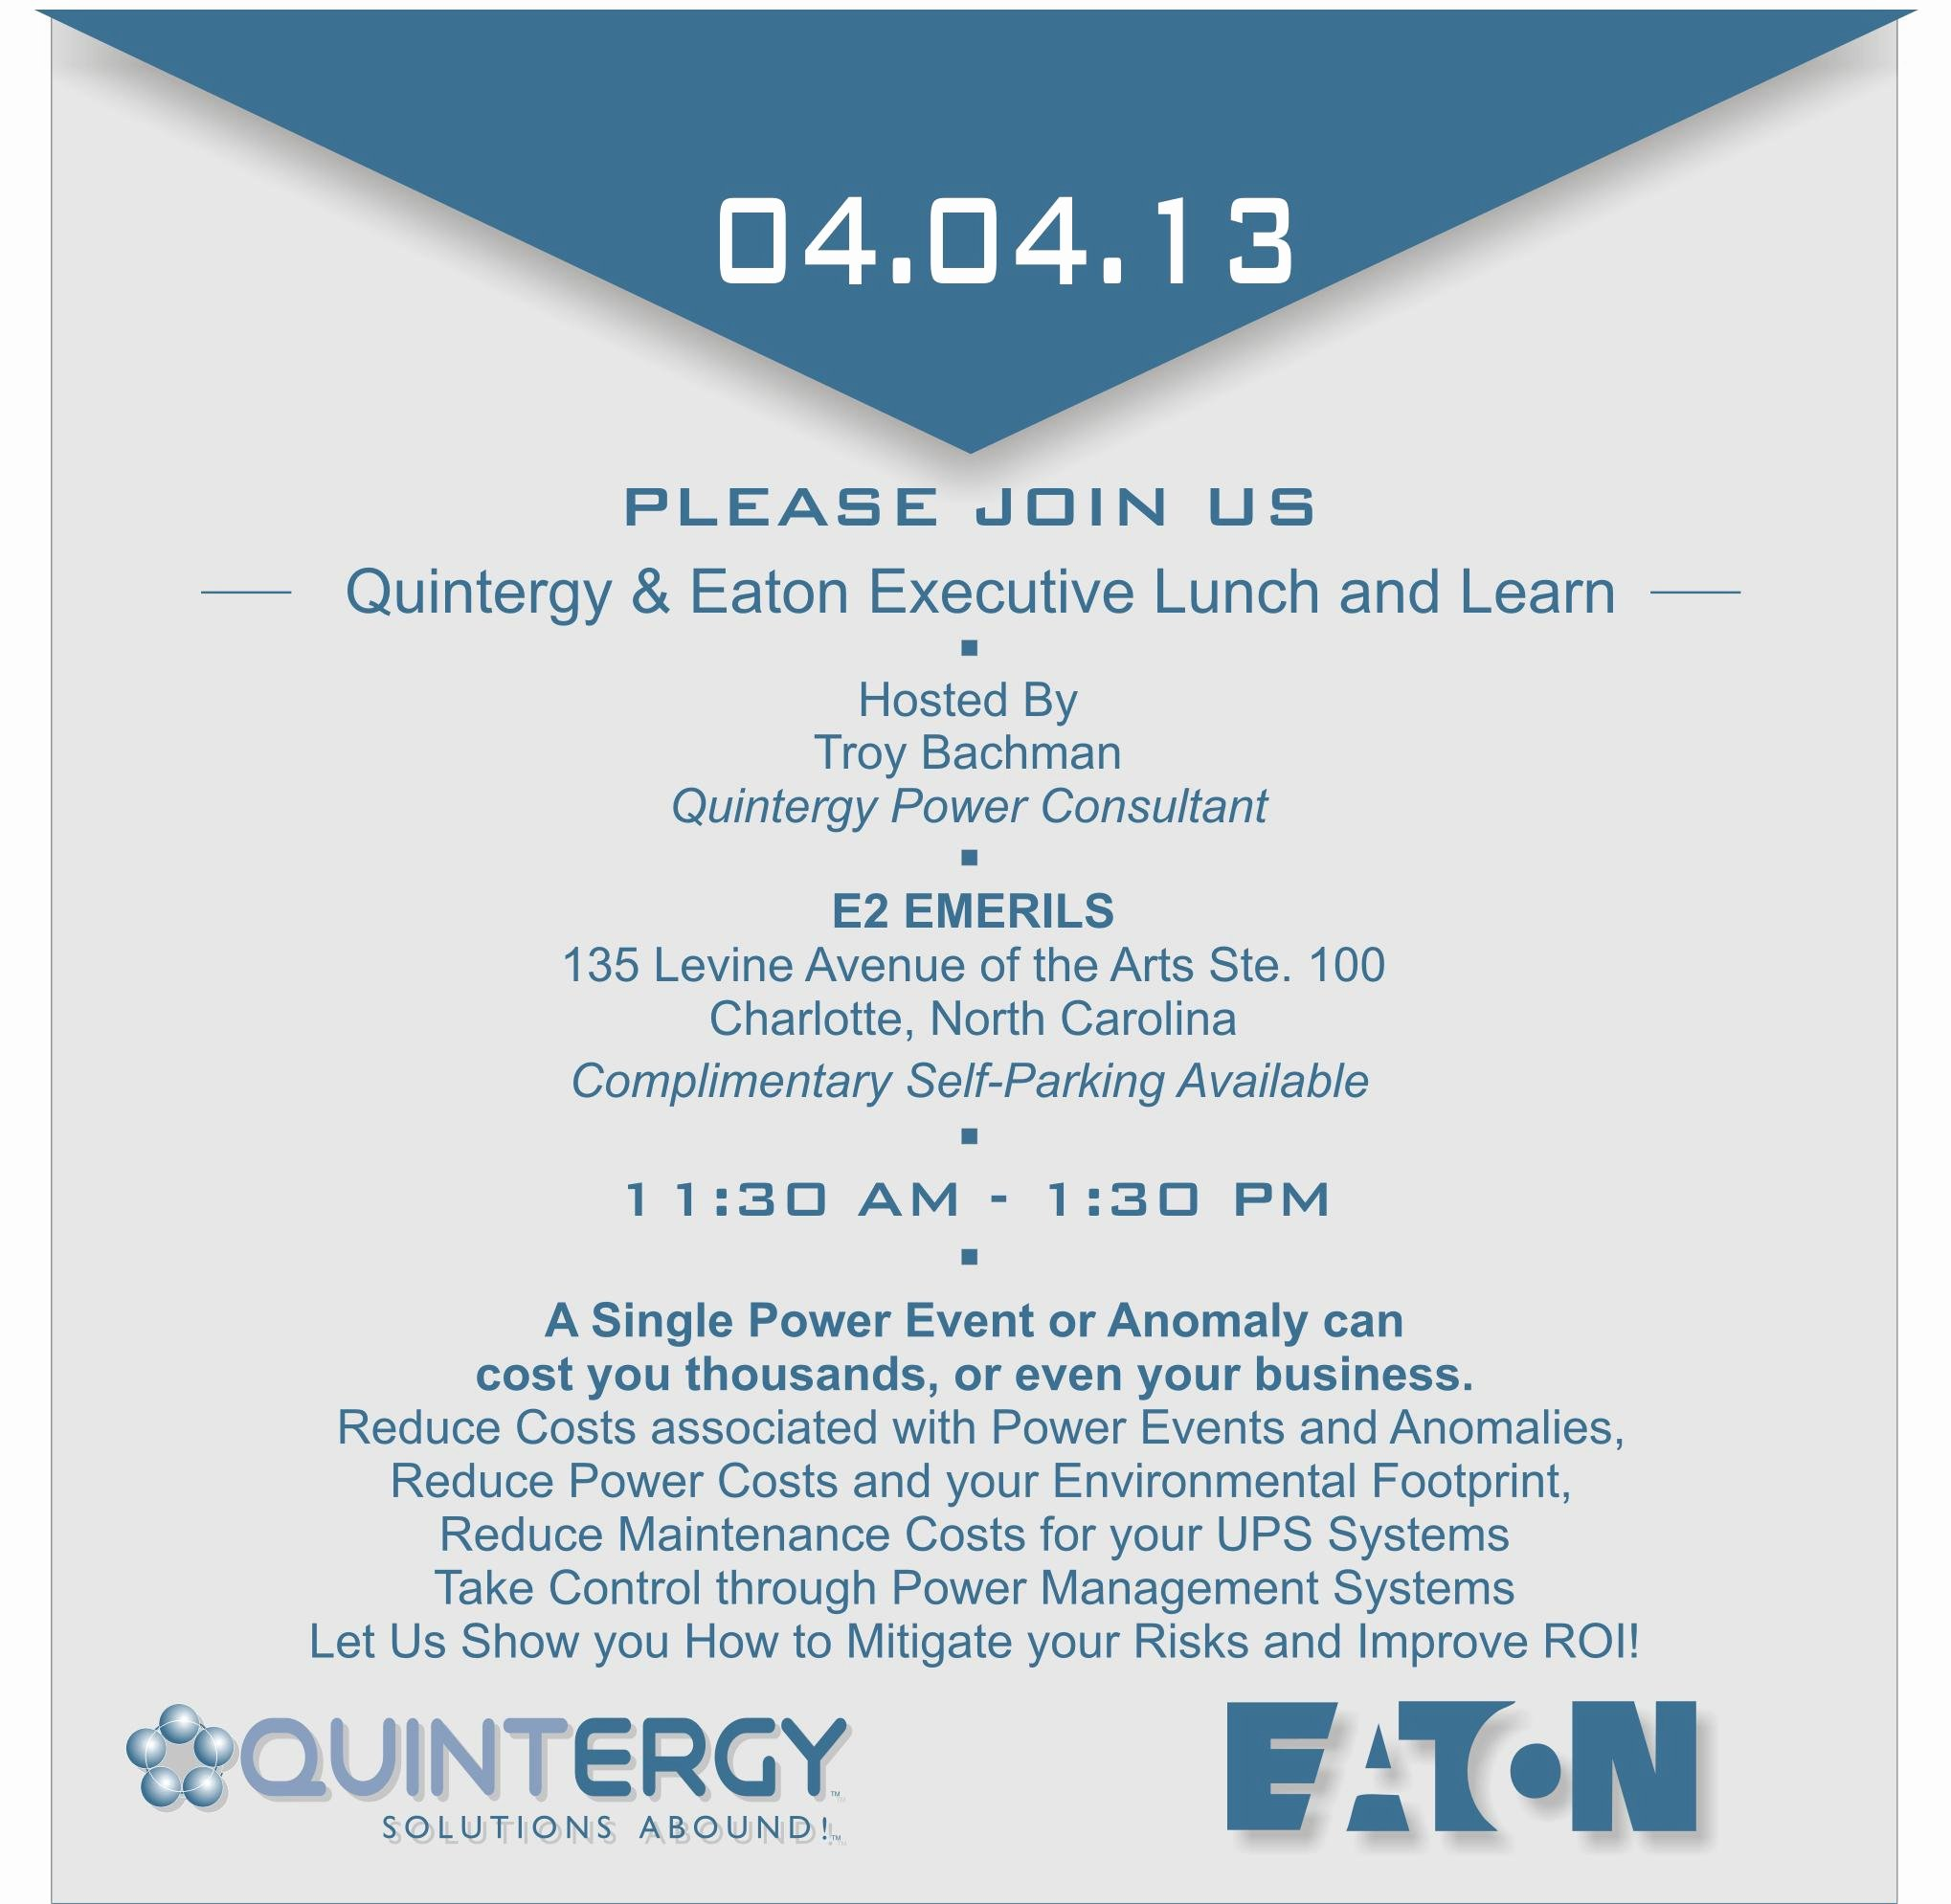 Lunch and Learn Invites Elegant Quintergy & Eaton Executive Lunch and Learn Charlotte Nc Tickets Thu Apr 4 2013 at 11 30 Am